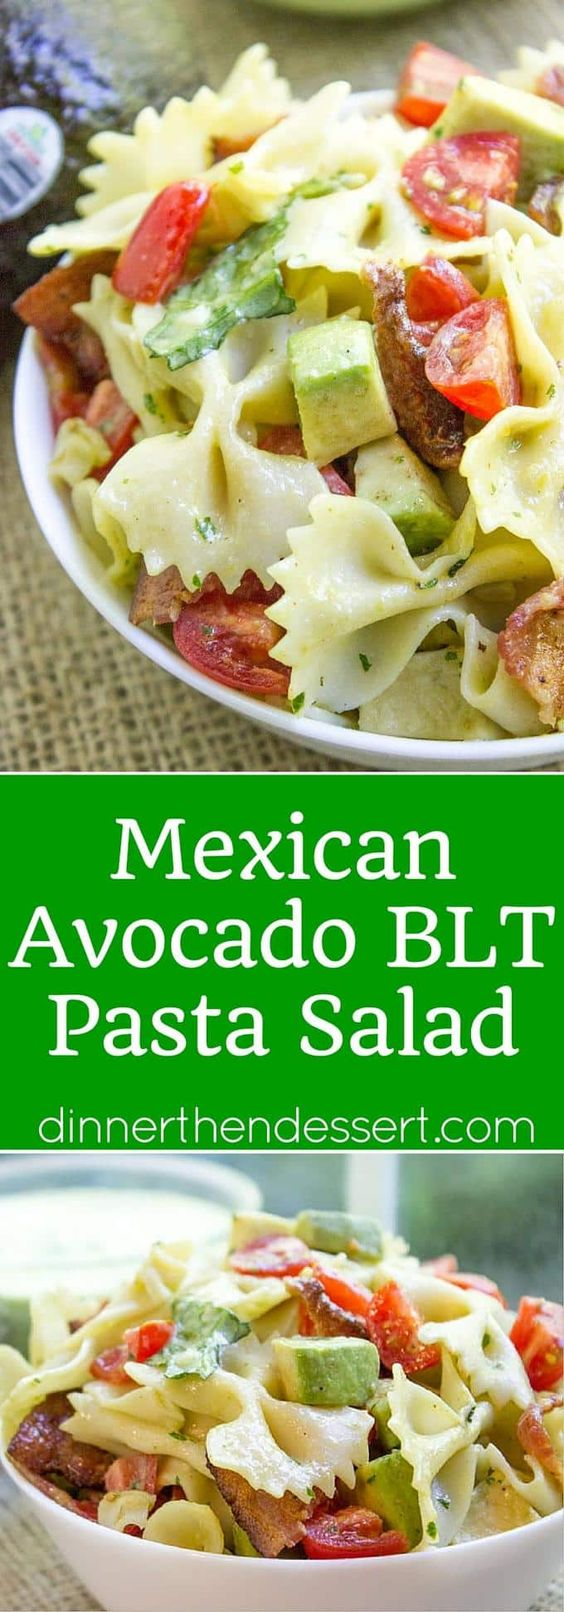 Blt pasta salads, Salad with avocado and Pasta salad on Pinterest